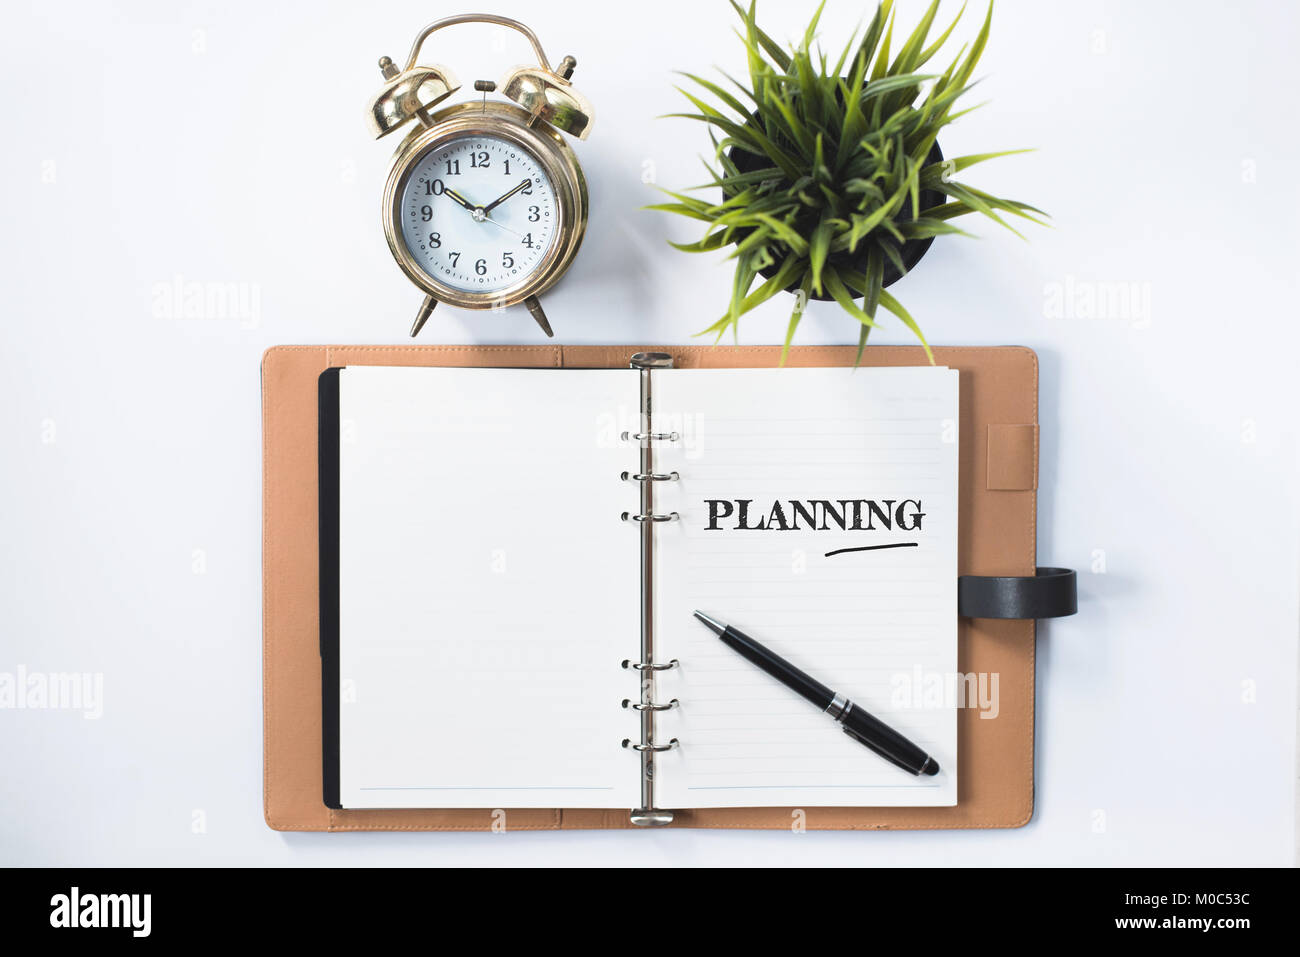 clock, green plant and blank notebook with PLANNING word. planning concept - Stock Image